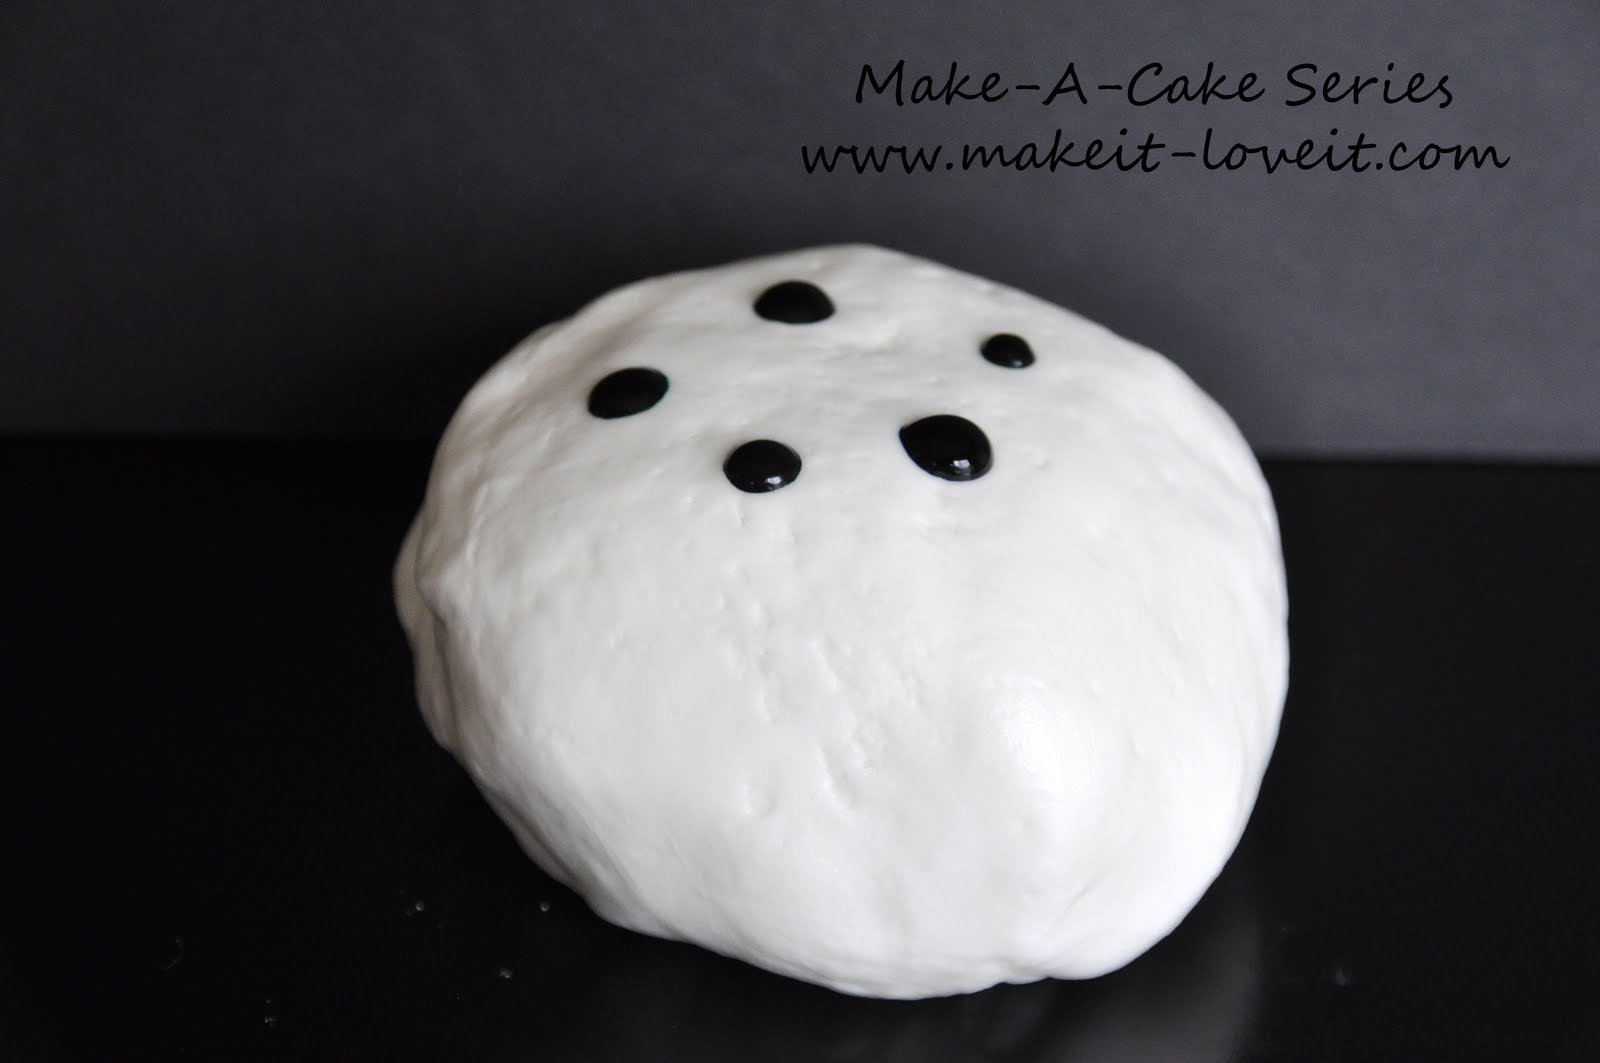 Make-a-Cake Series: Making and Coloring Fondant – Make It and Love It